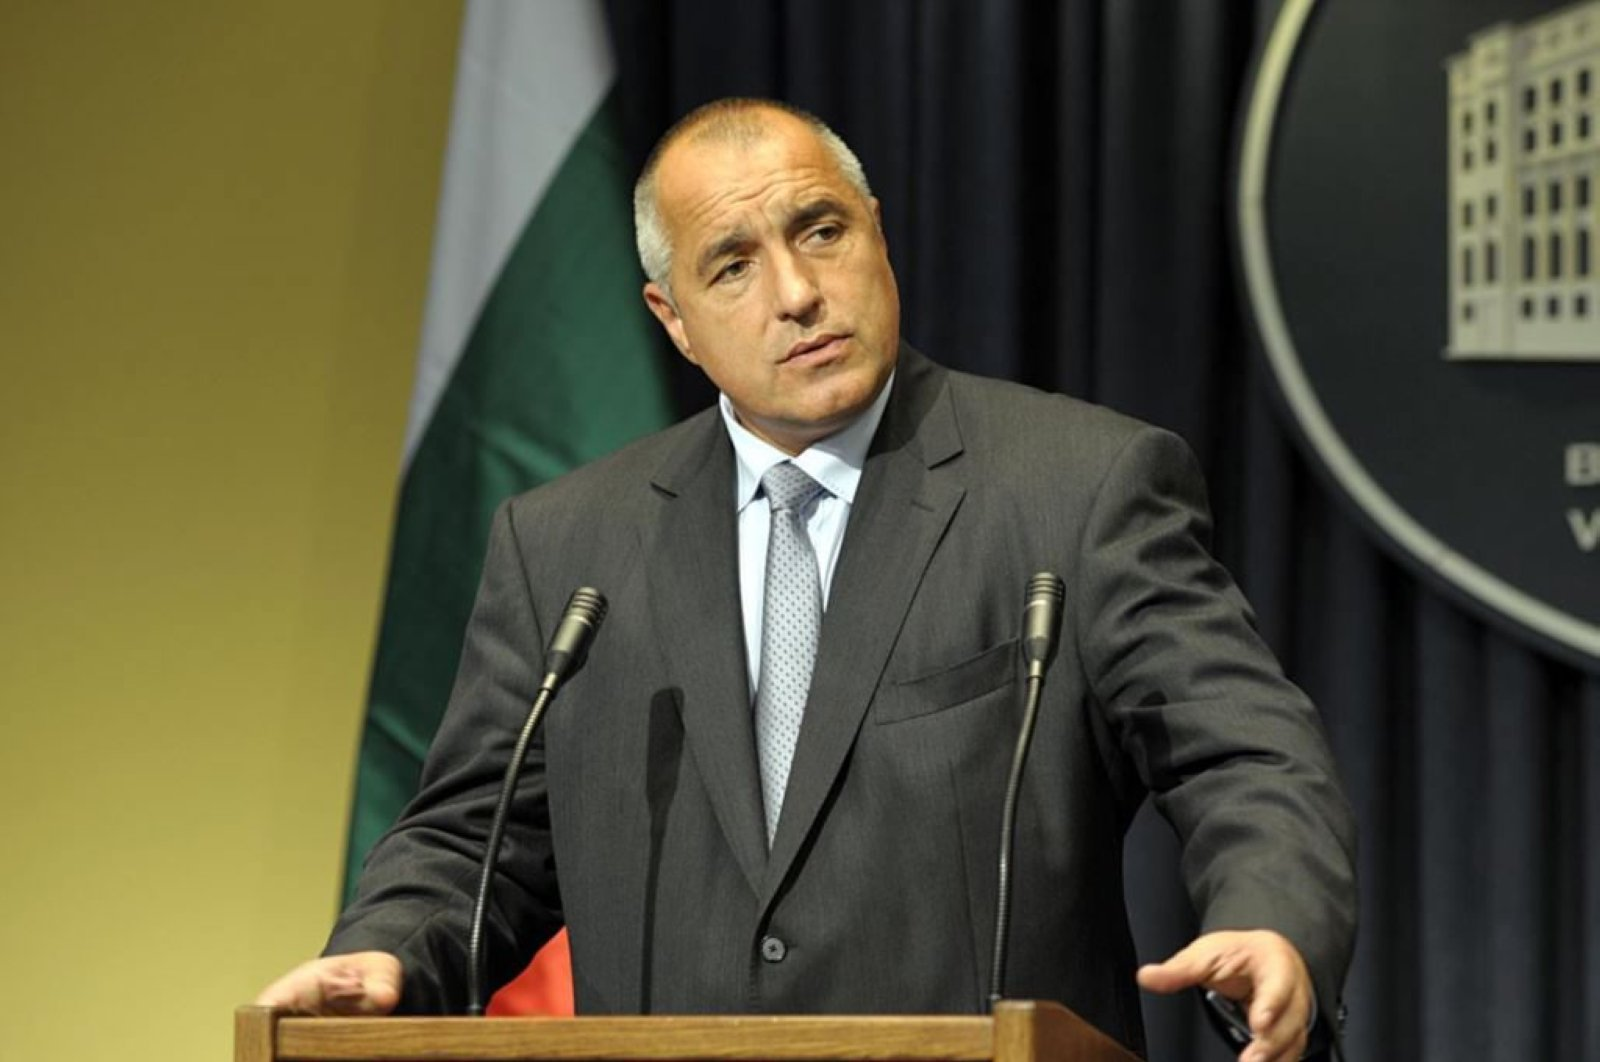 Bulgarian Prime Minister Boyko Borisov. (File Photo)